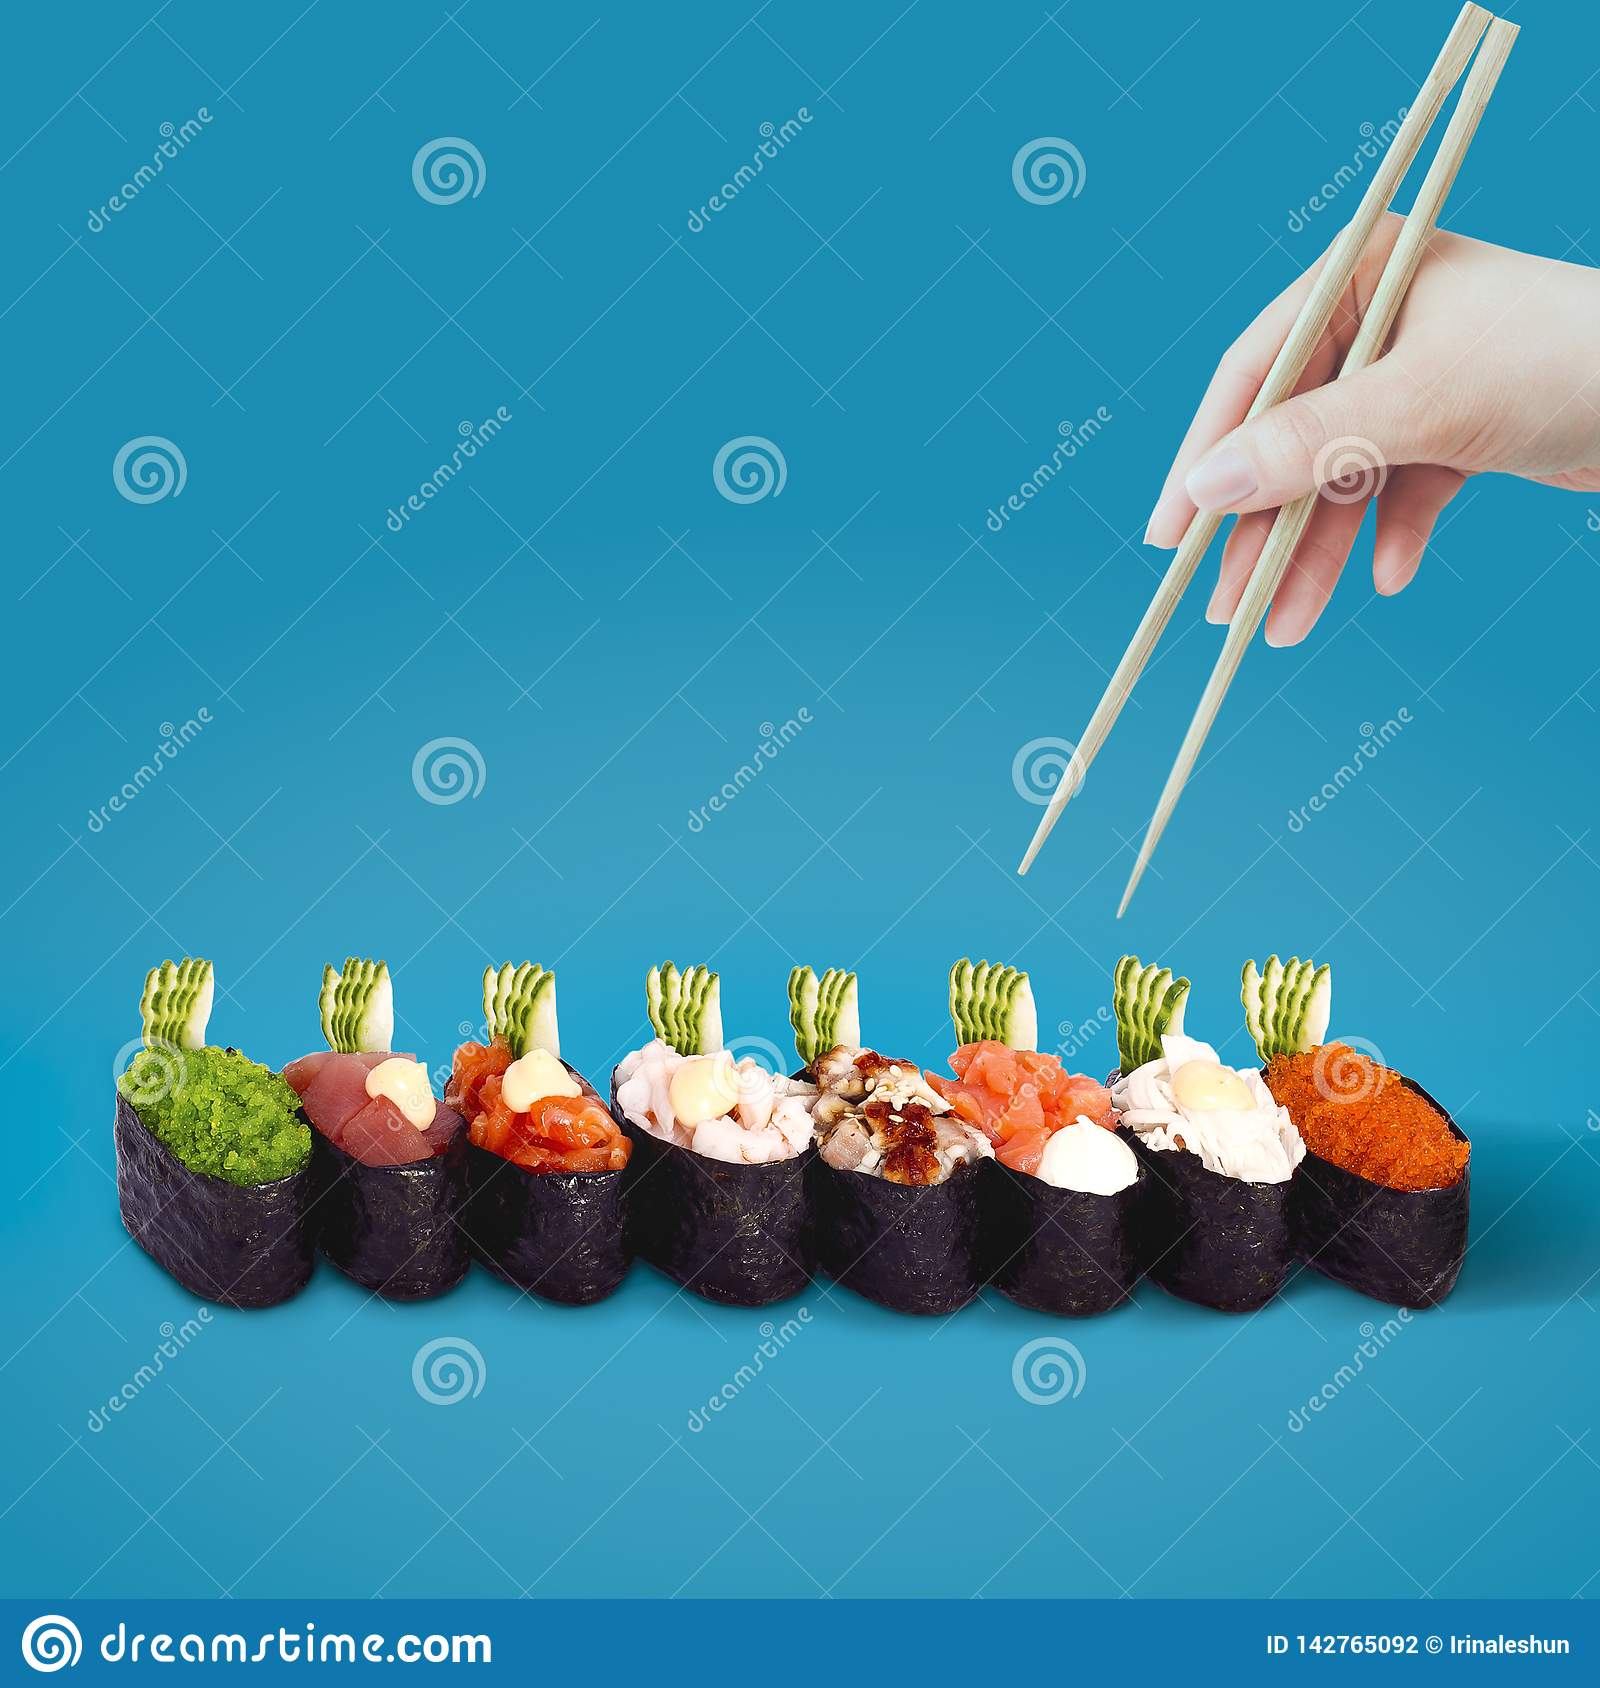 Hand with chopsticks selects sushi on a blue background.